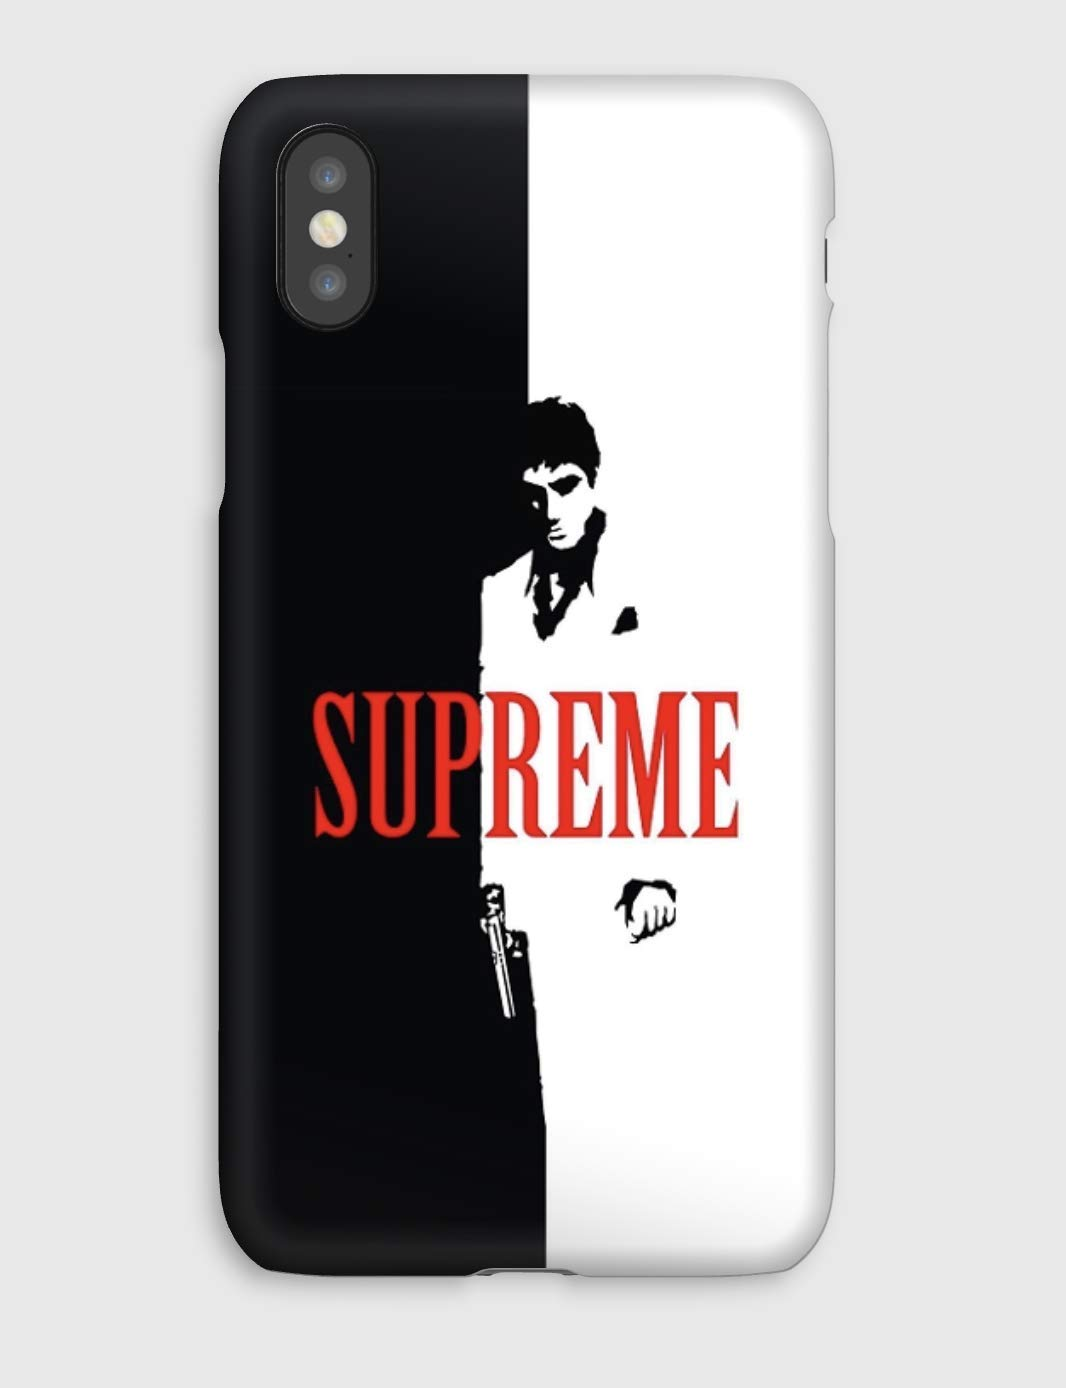 Supreme N&B, coque pour iPhone XS, XS Max, XR, X, 8, 8+, 7, 7+, 6S, 6, 6S+, 6+, 5C, 5, 5S, 5SE, 4S, 4,